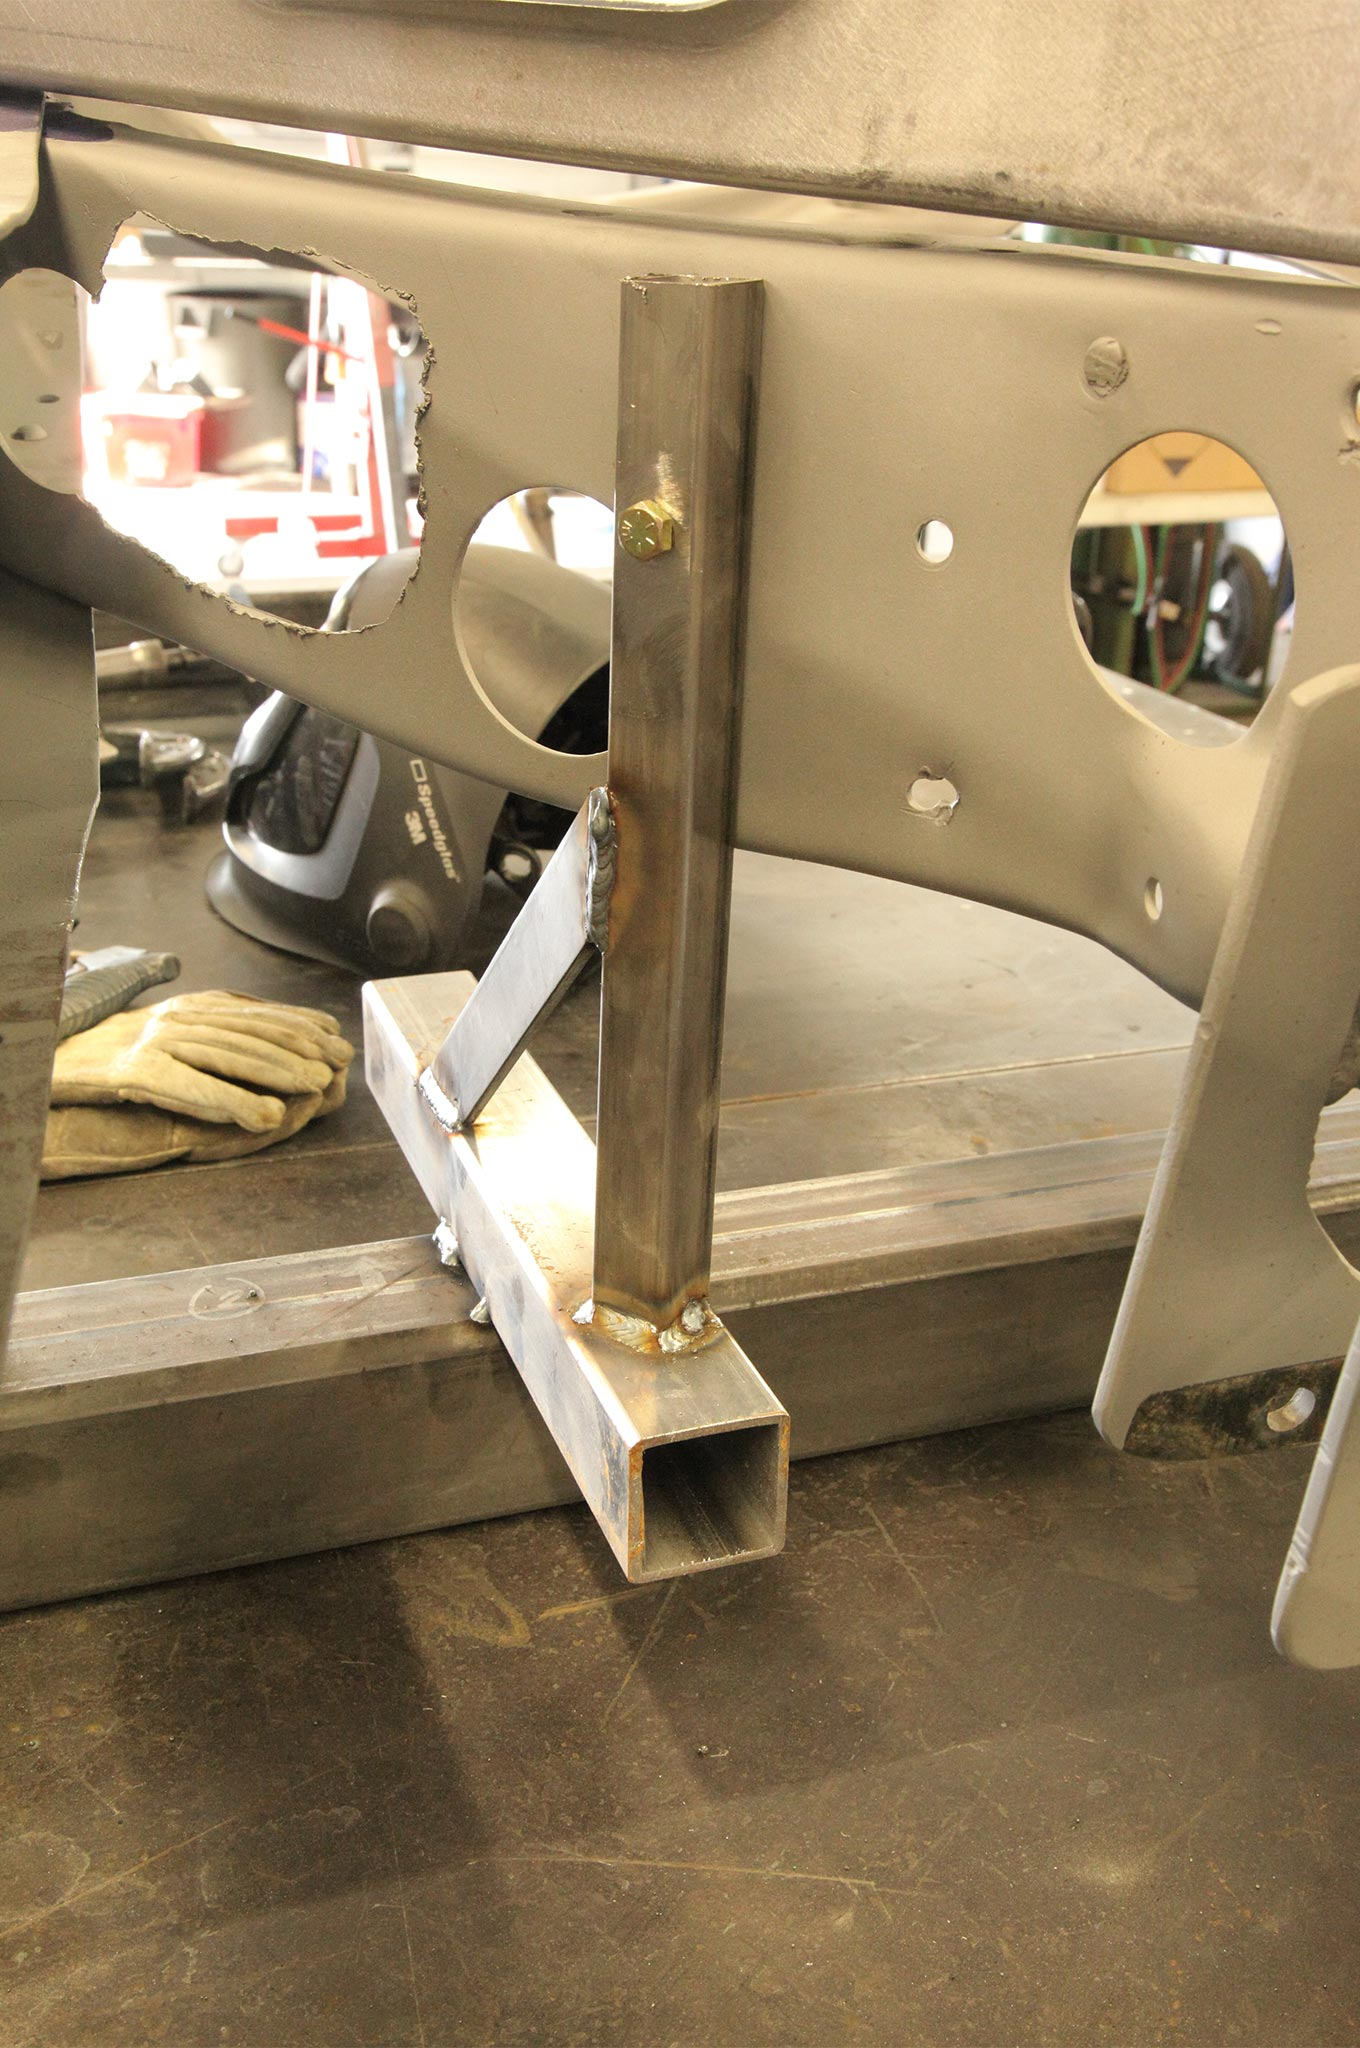 It's also a good idea to build a jig to locate the stock pedal assembly.